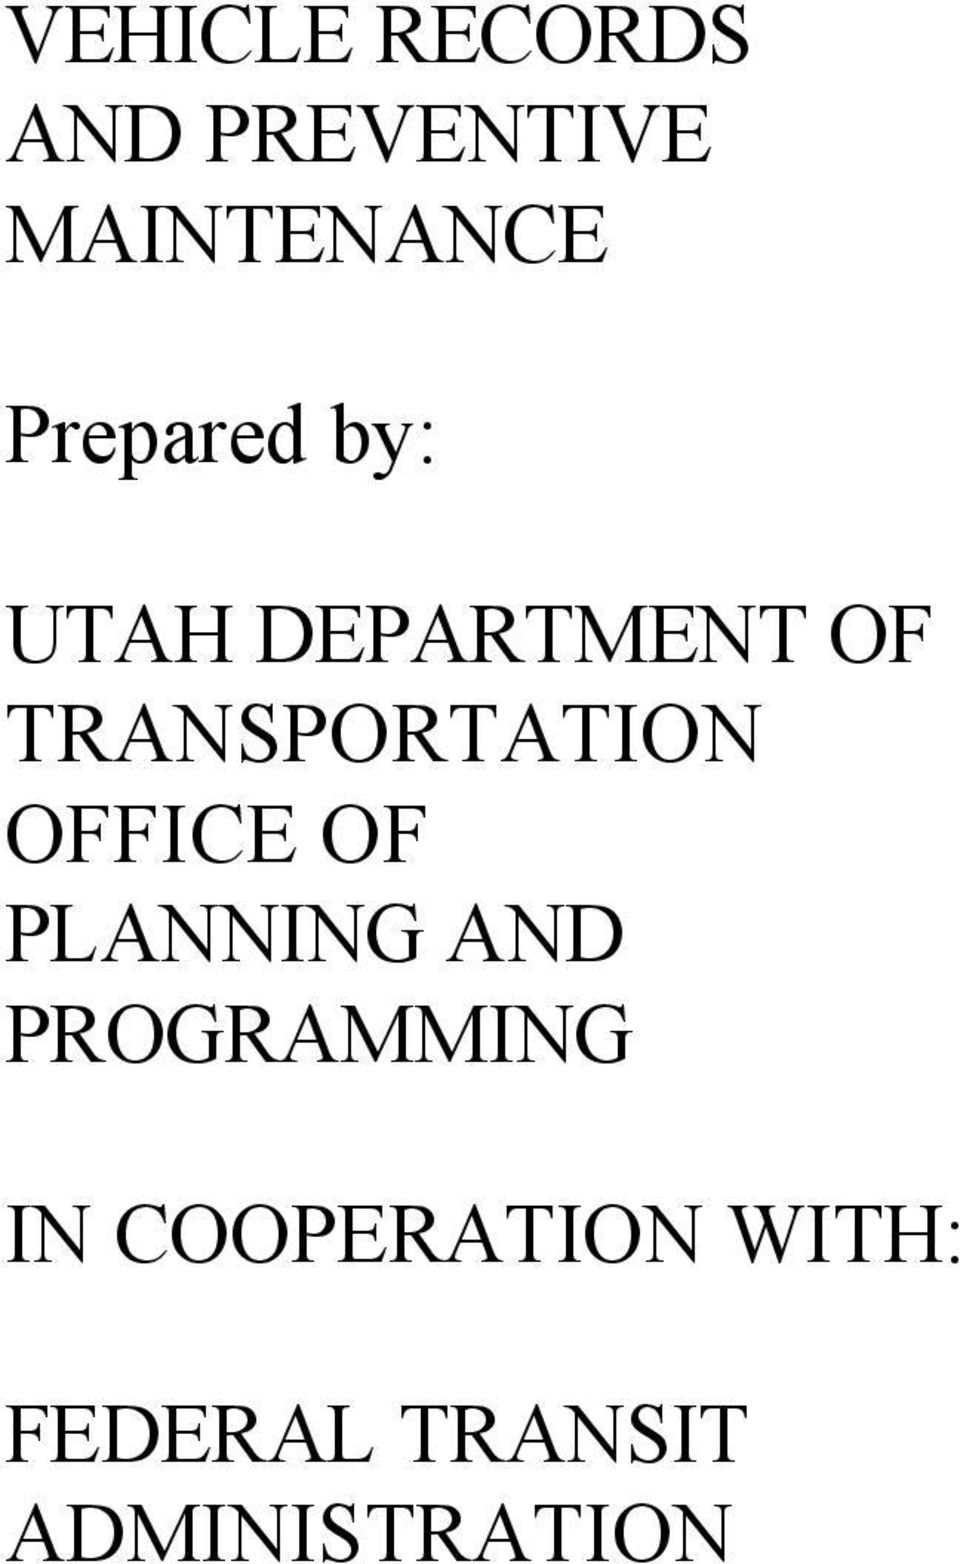 TRANSPORTATION OFFICE OF PLANNING AND